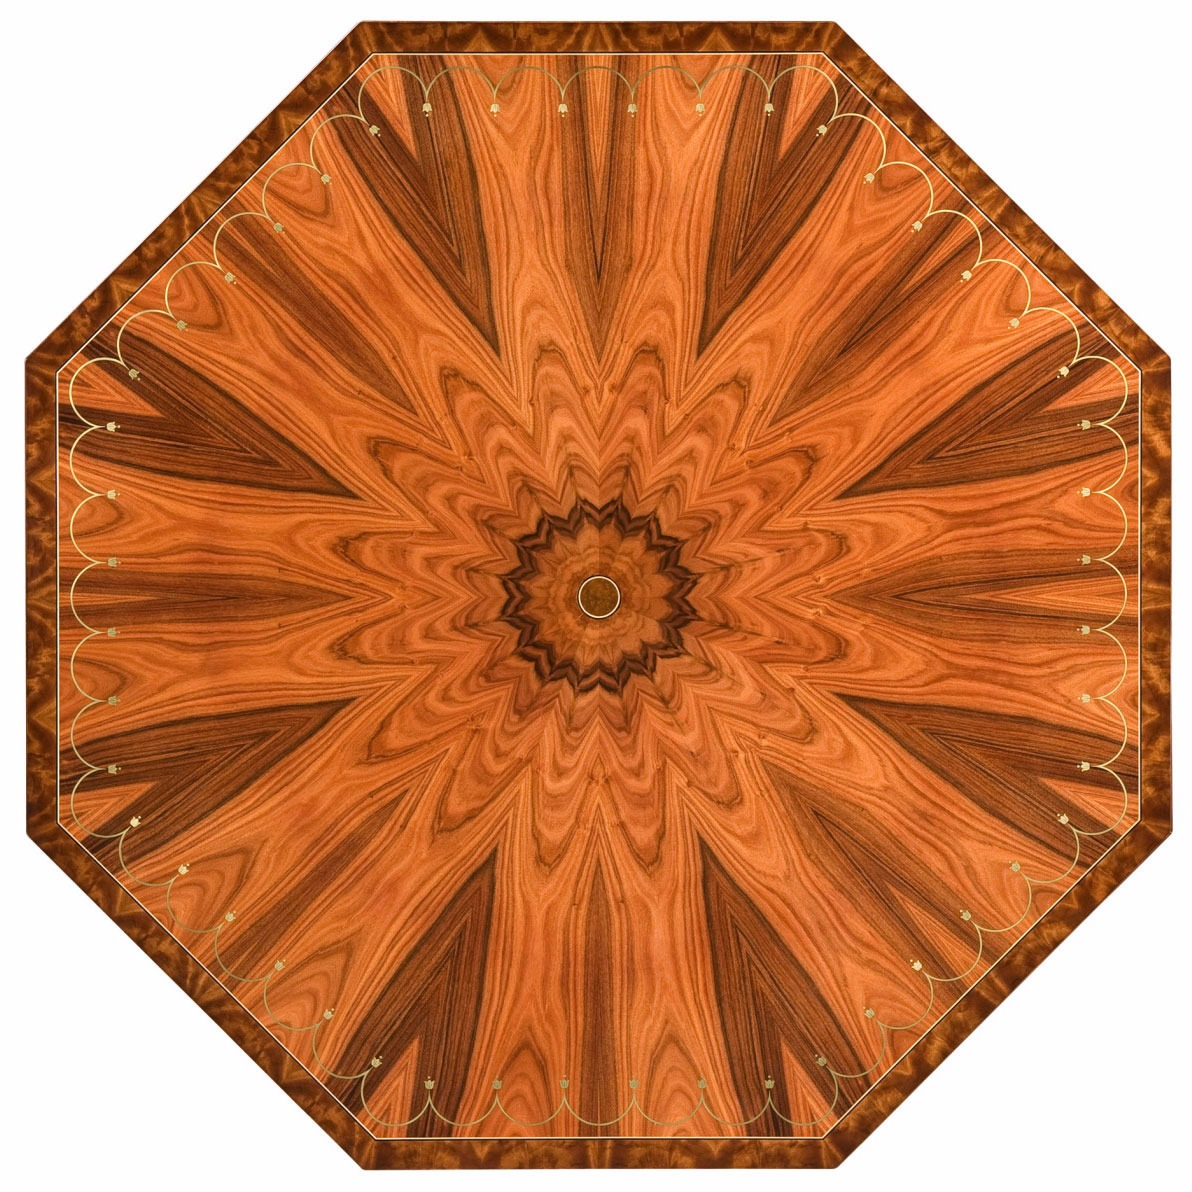 Fine rosewood octagonal centre table